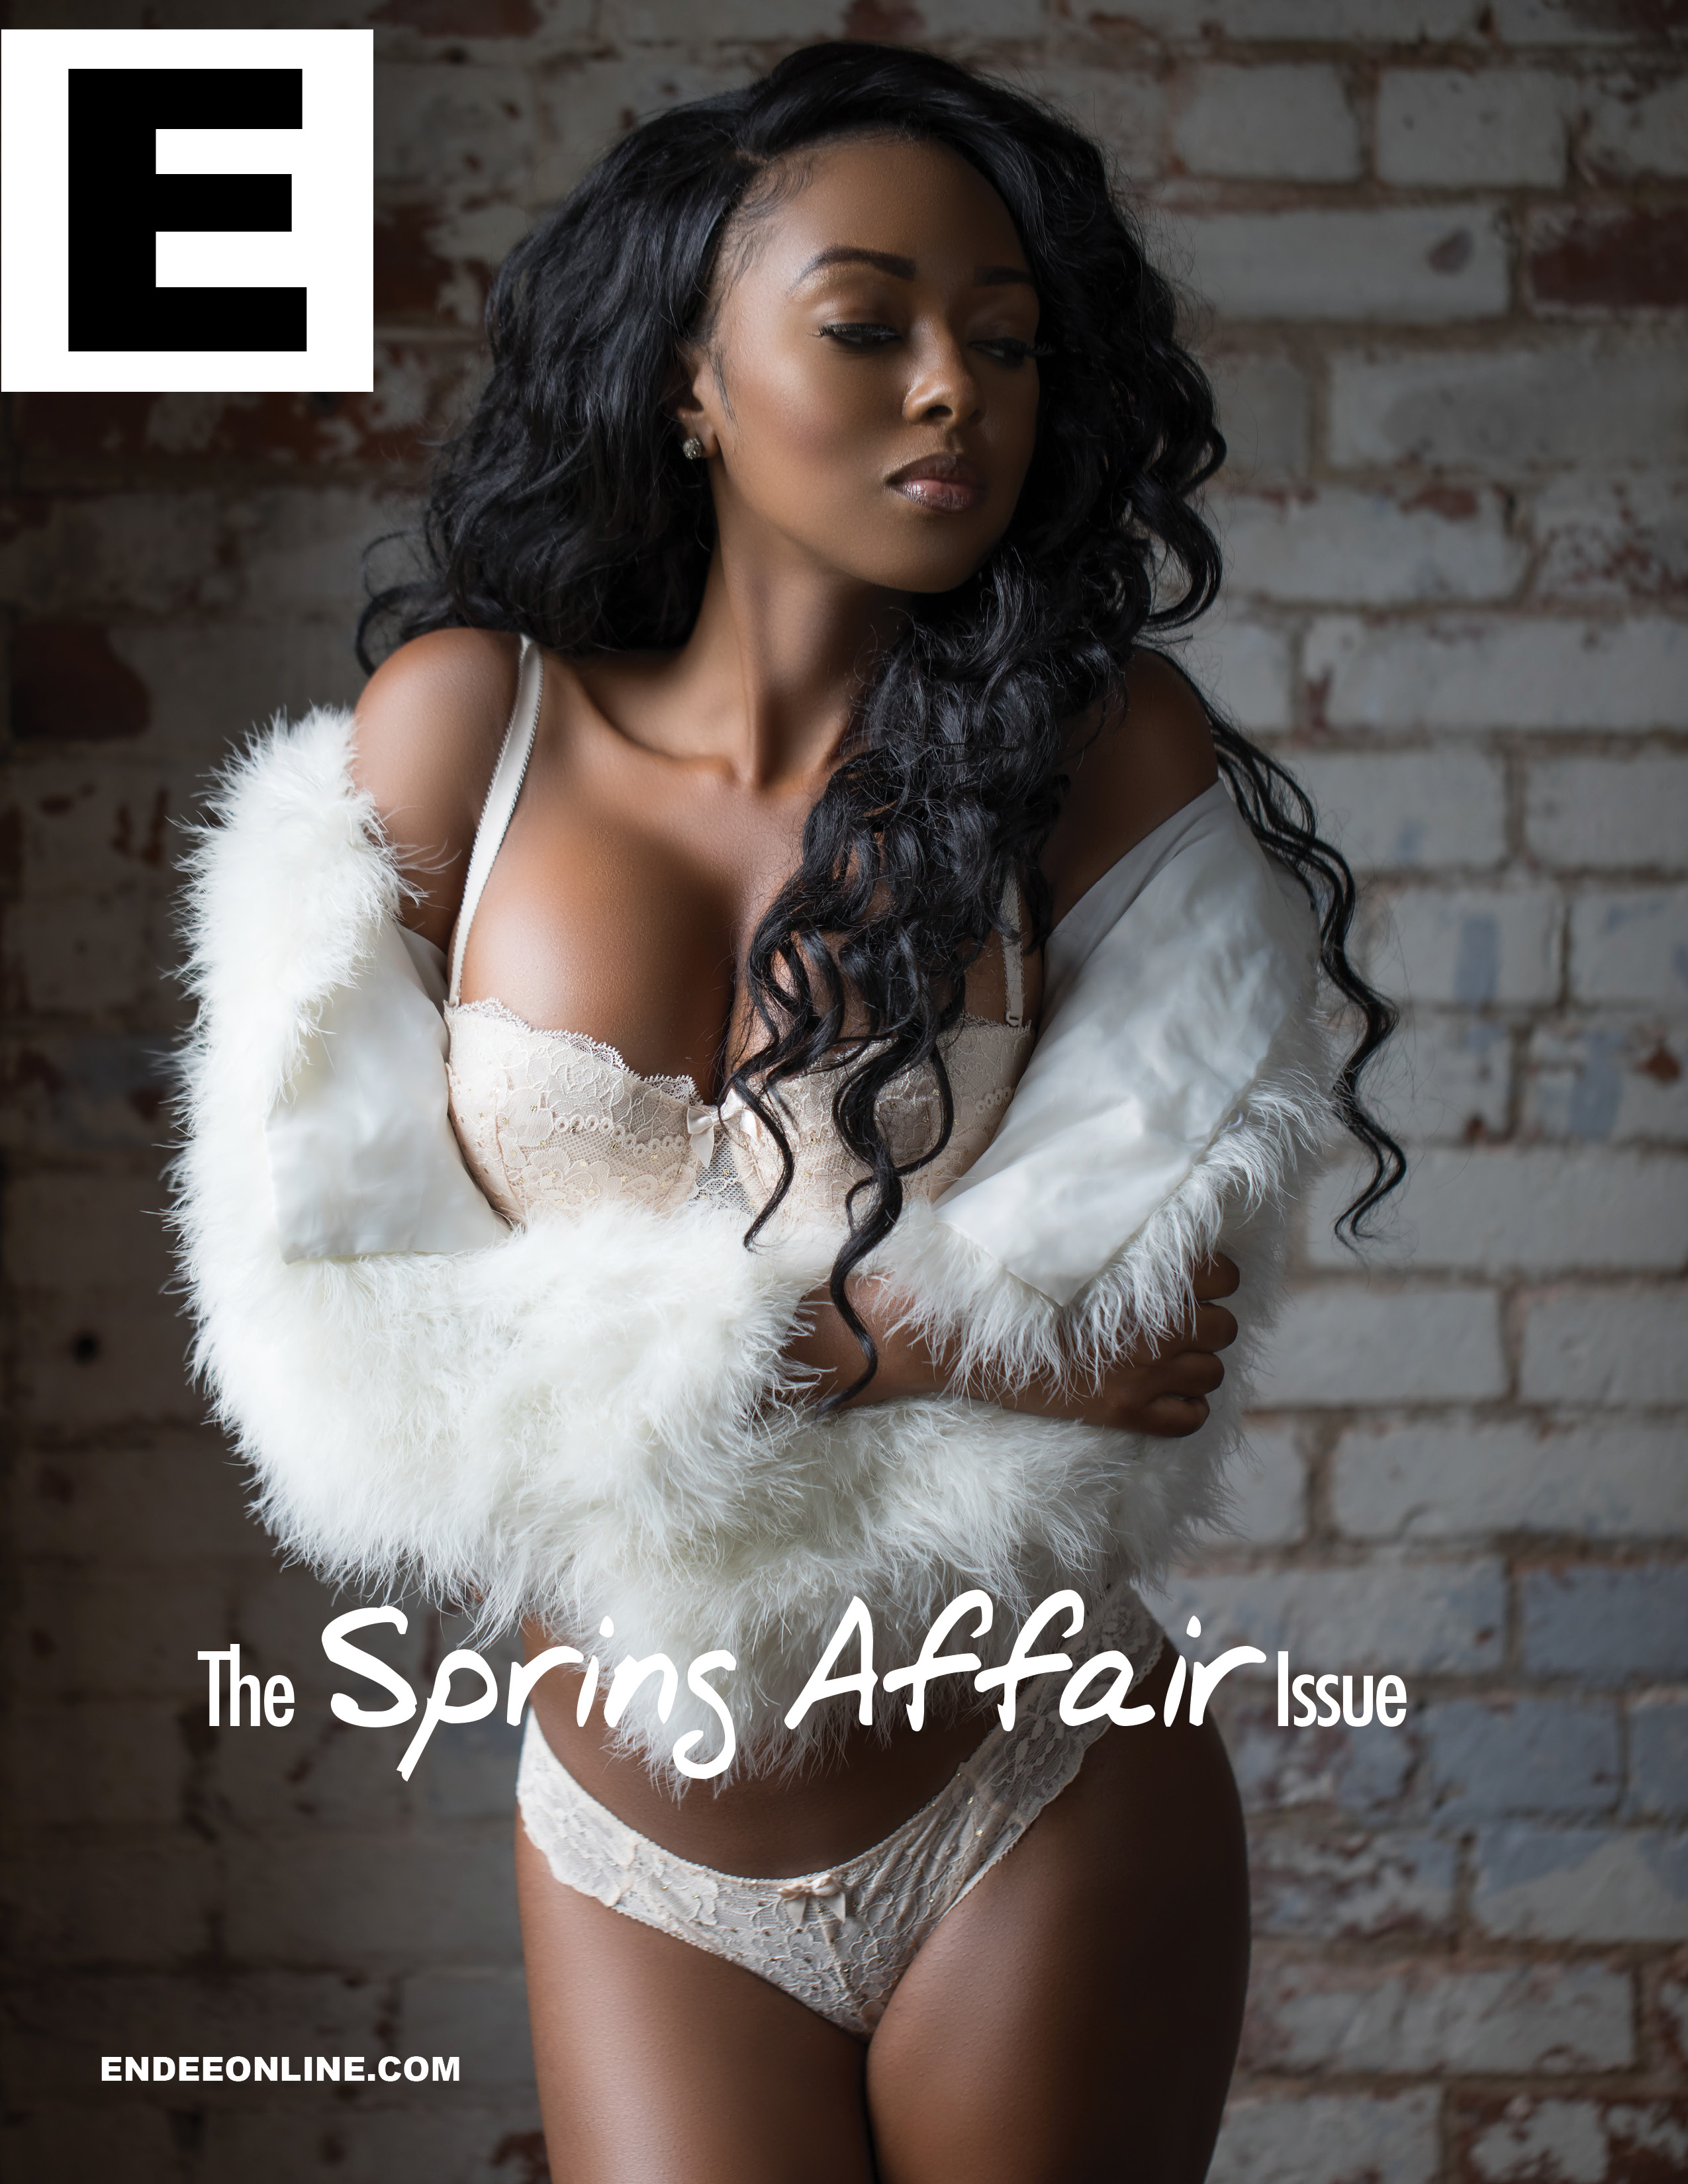 ENDEE Magazine The Spring Affair Issue